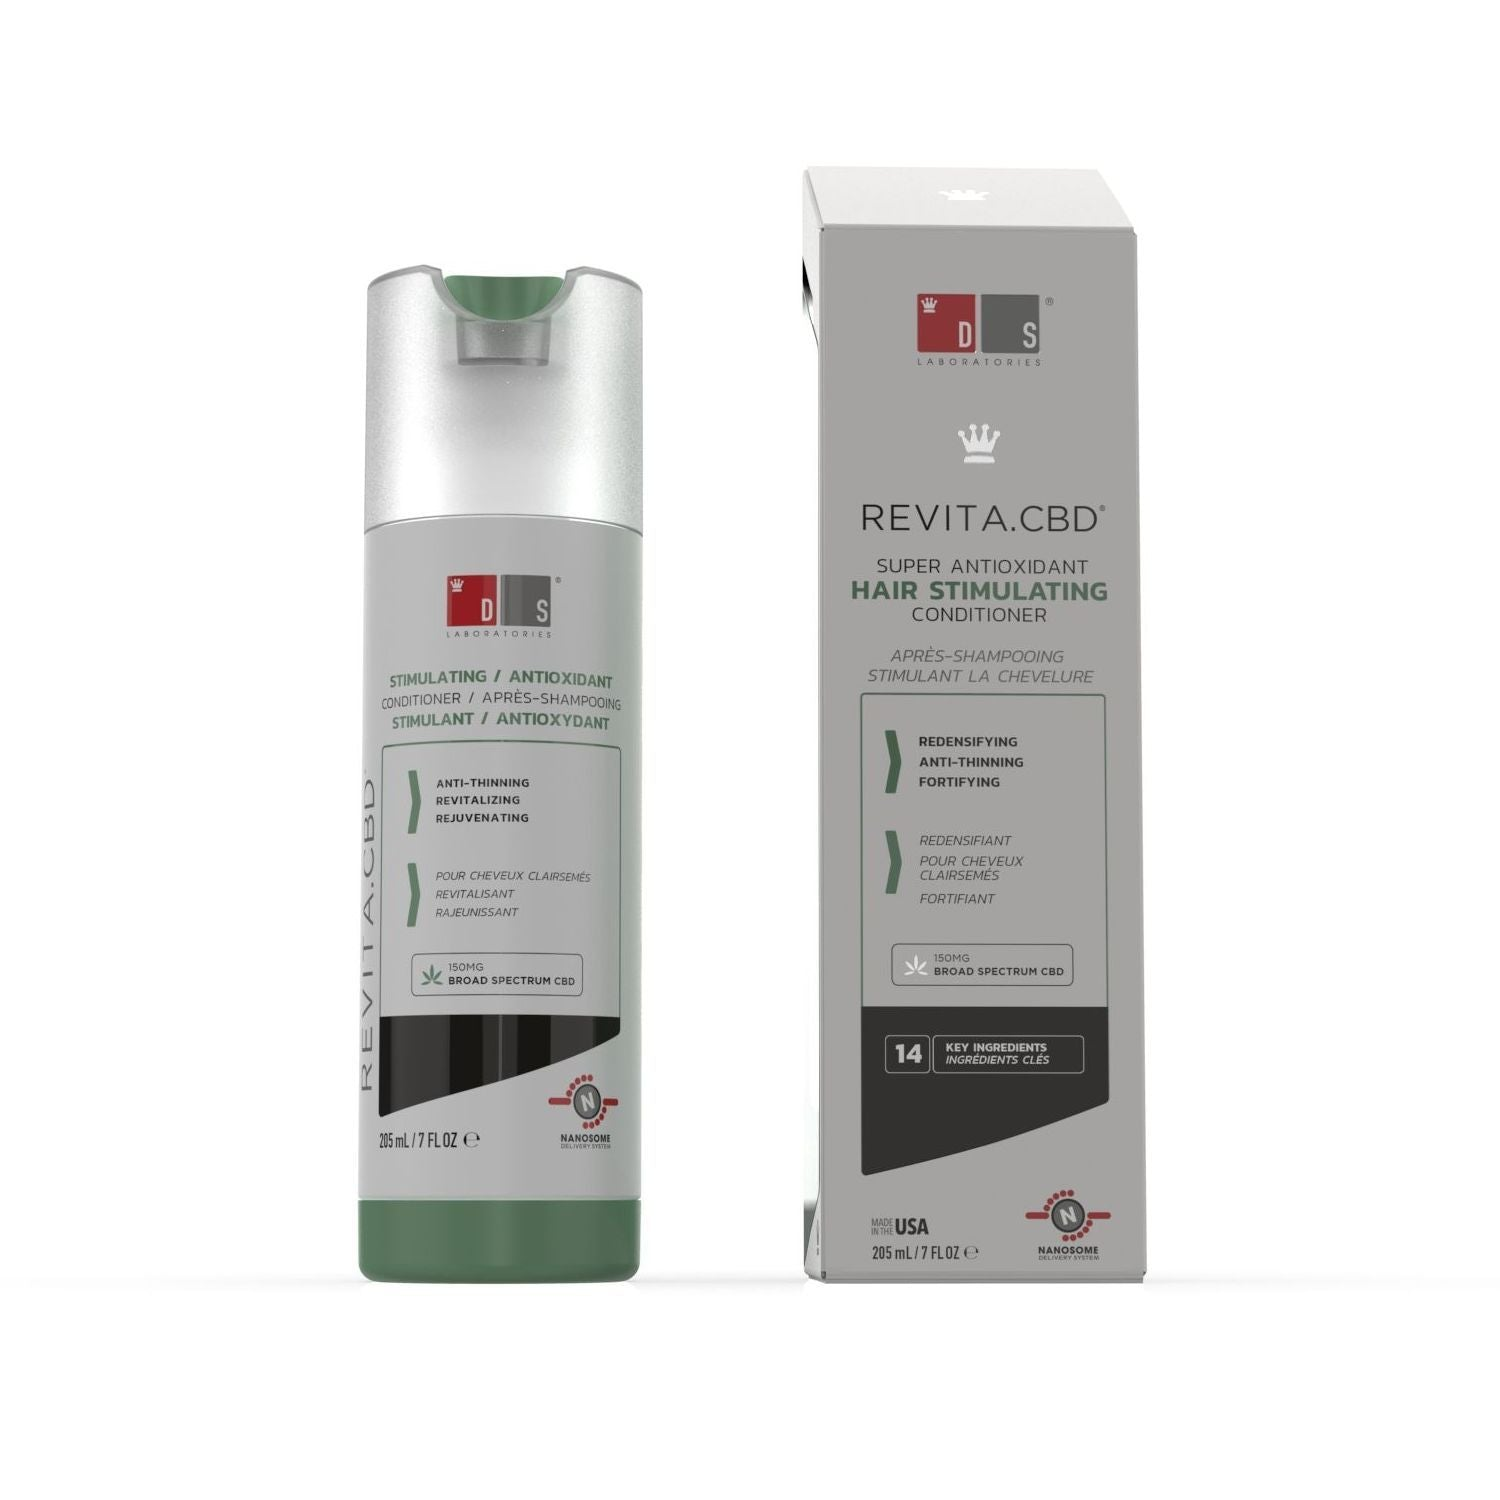 Revita.CBD | Super Antioxidant Hair Stimulating CBD Conditioner